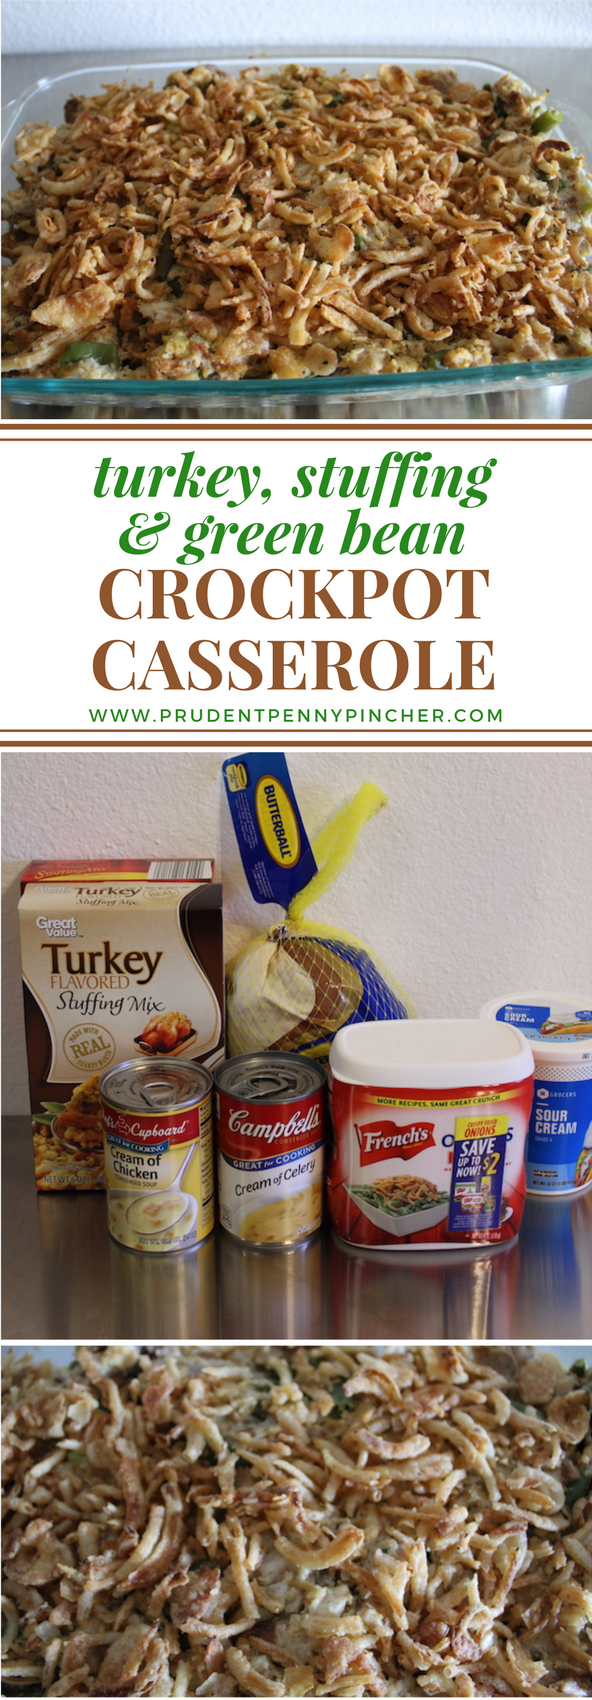 turkey, stuffing and green bean crockpot recipes